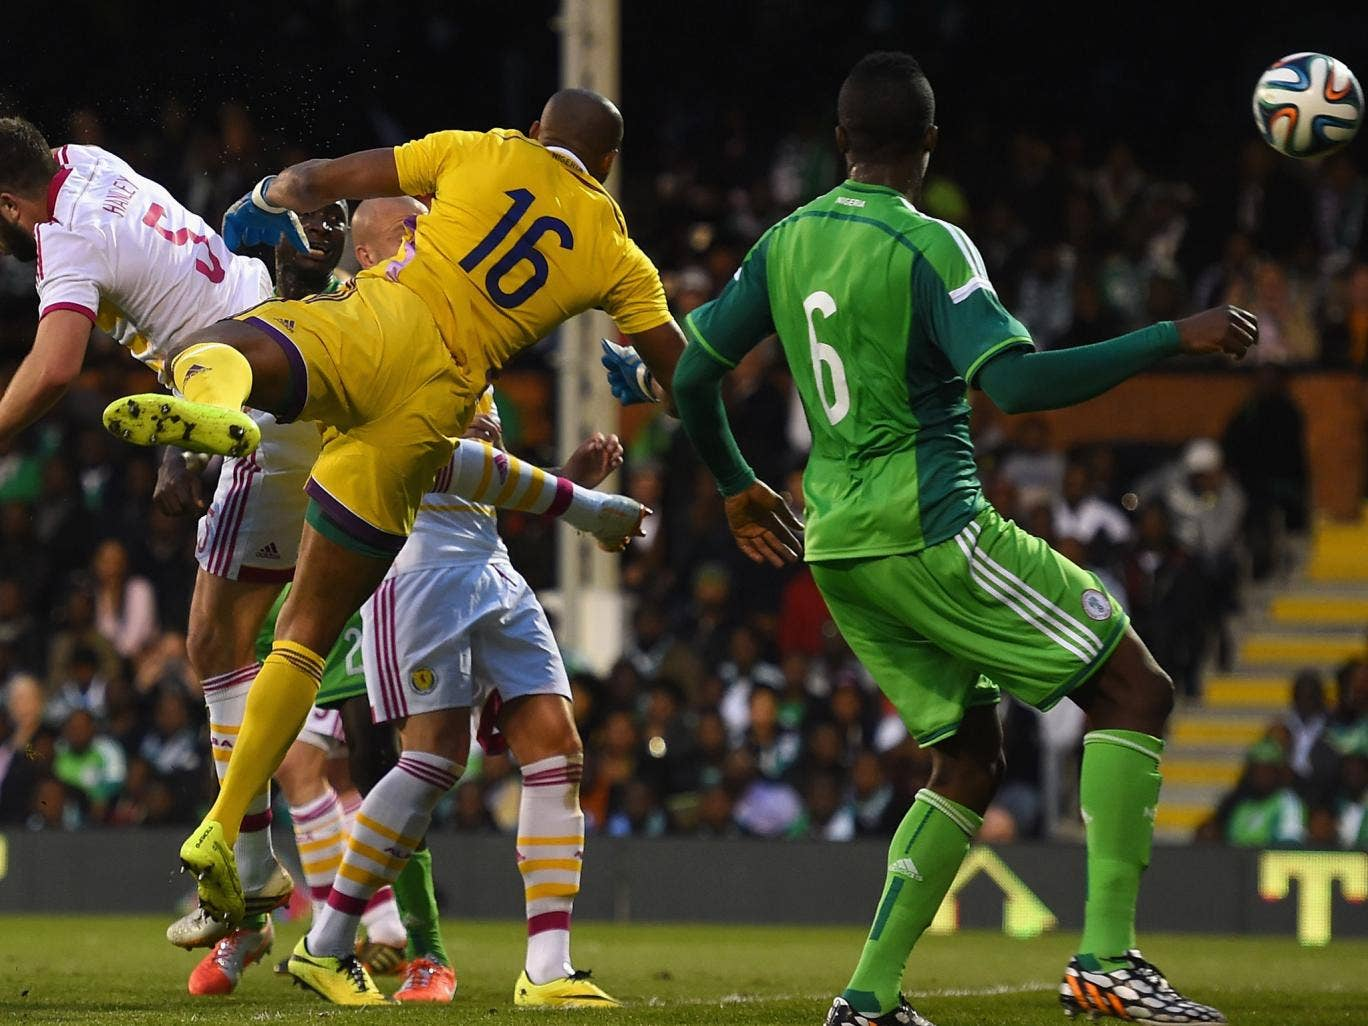 Nigeria goalkeeper Austine Ejide (#16) scoops the ball into his own net while competing with Scotland's Grant Hanley (#5)